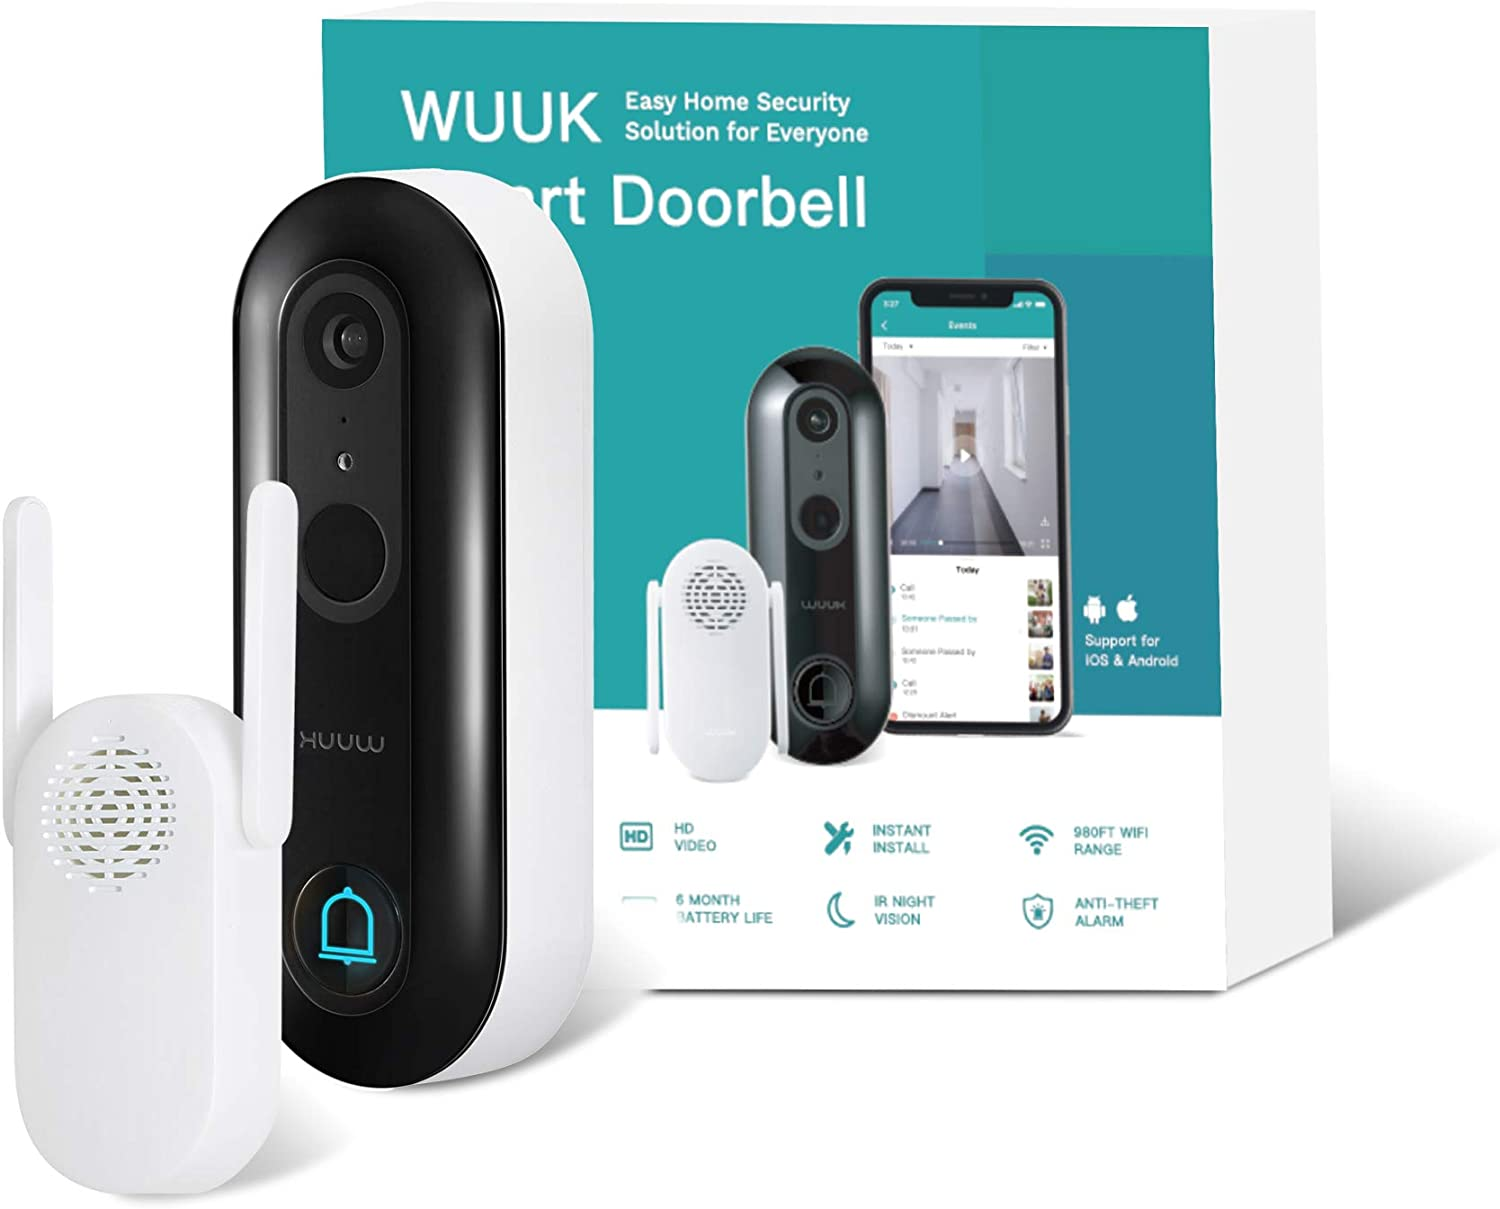 WUUK Smart Doorbell (Battery-Powered) Wireless Video Security Camera No Monthly Fee, Human Detection, 2-Way Audio, Simple Self-Installation (WUUK Smart Doorbell)